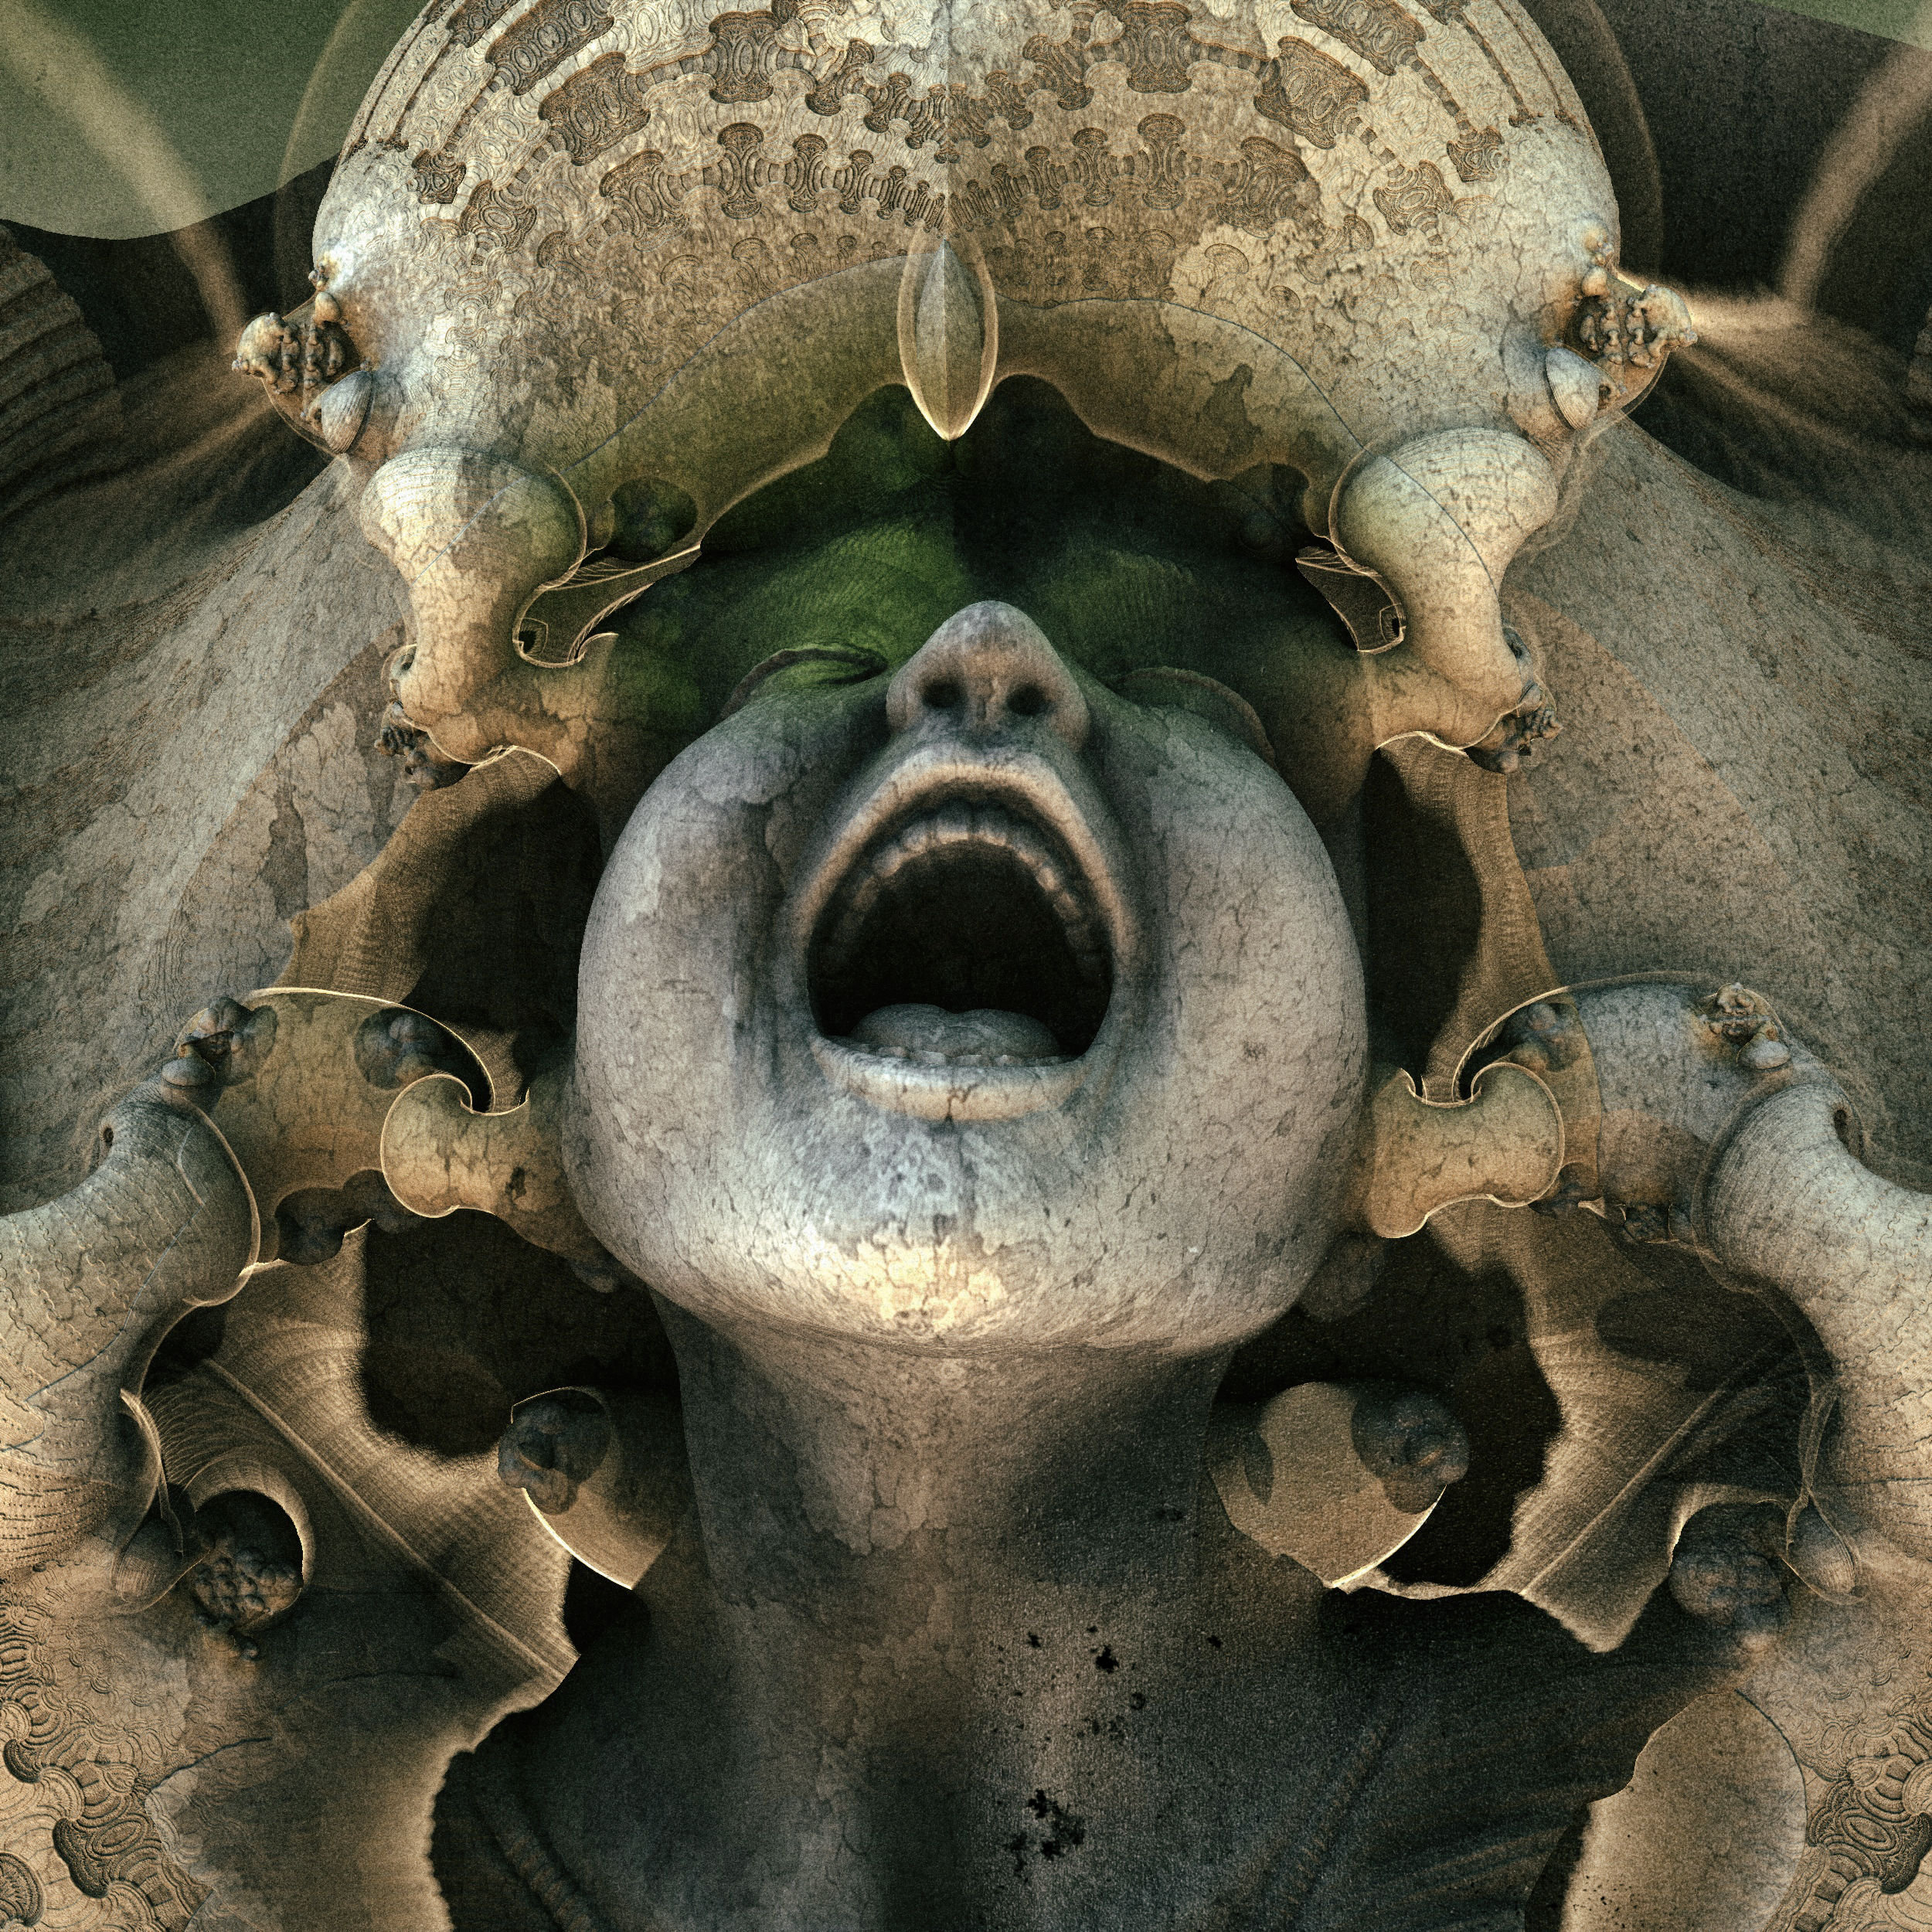 cry - Mandelbulb3D with Parameter and heightmap